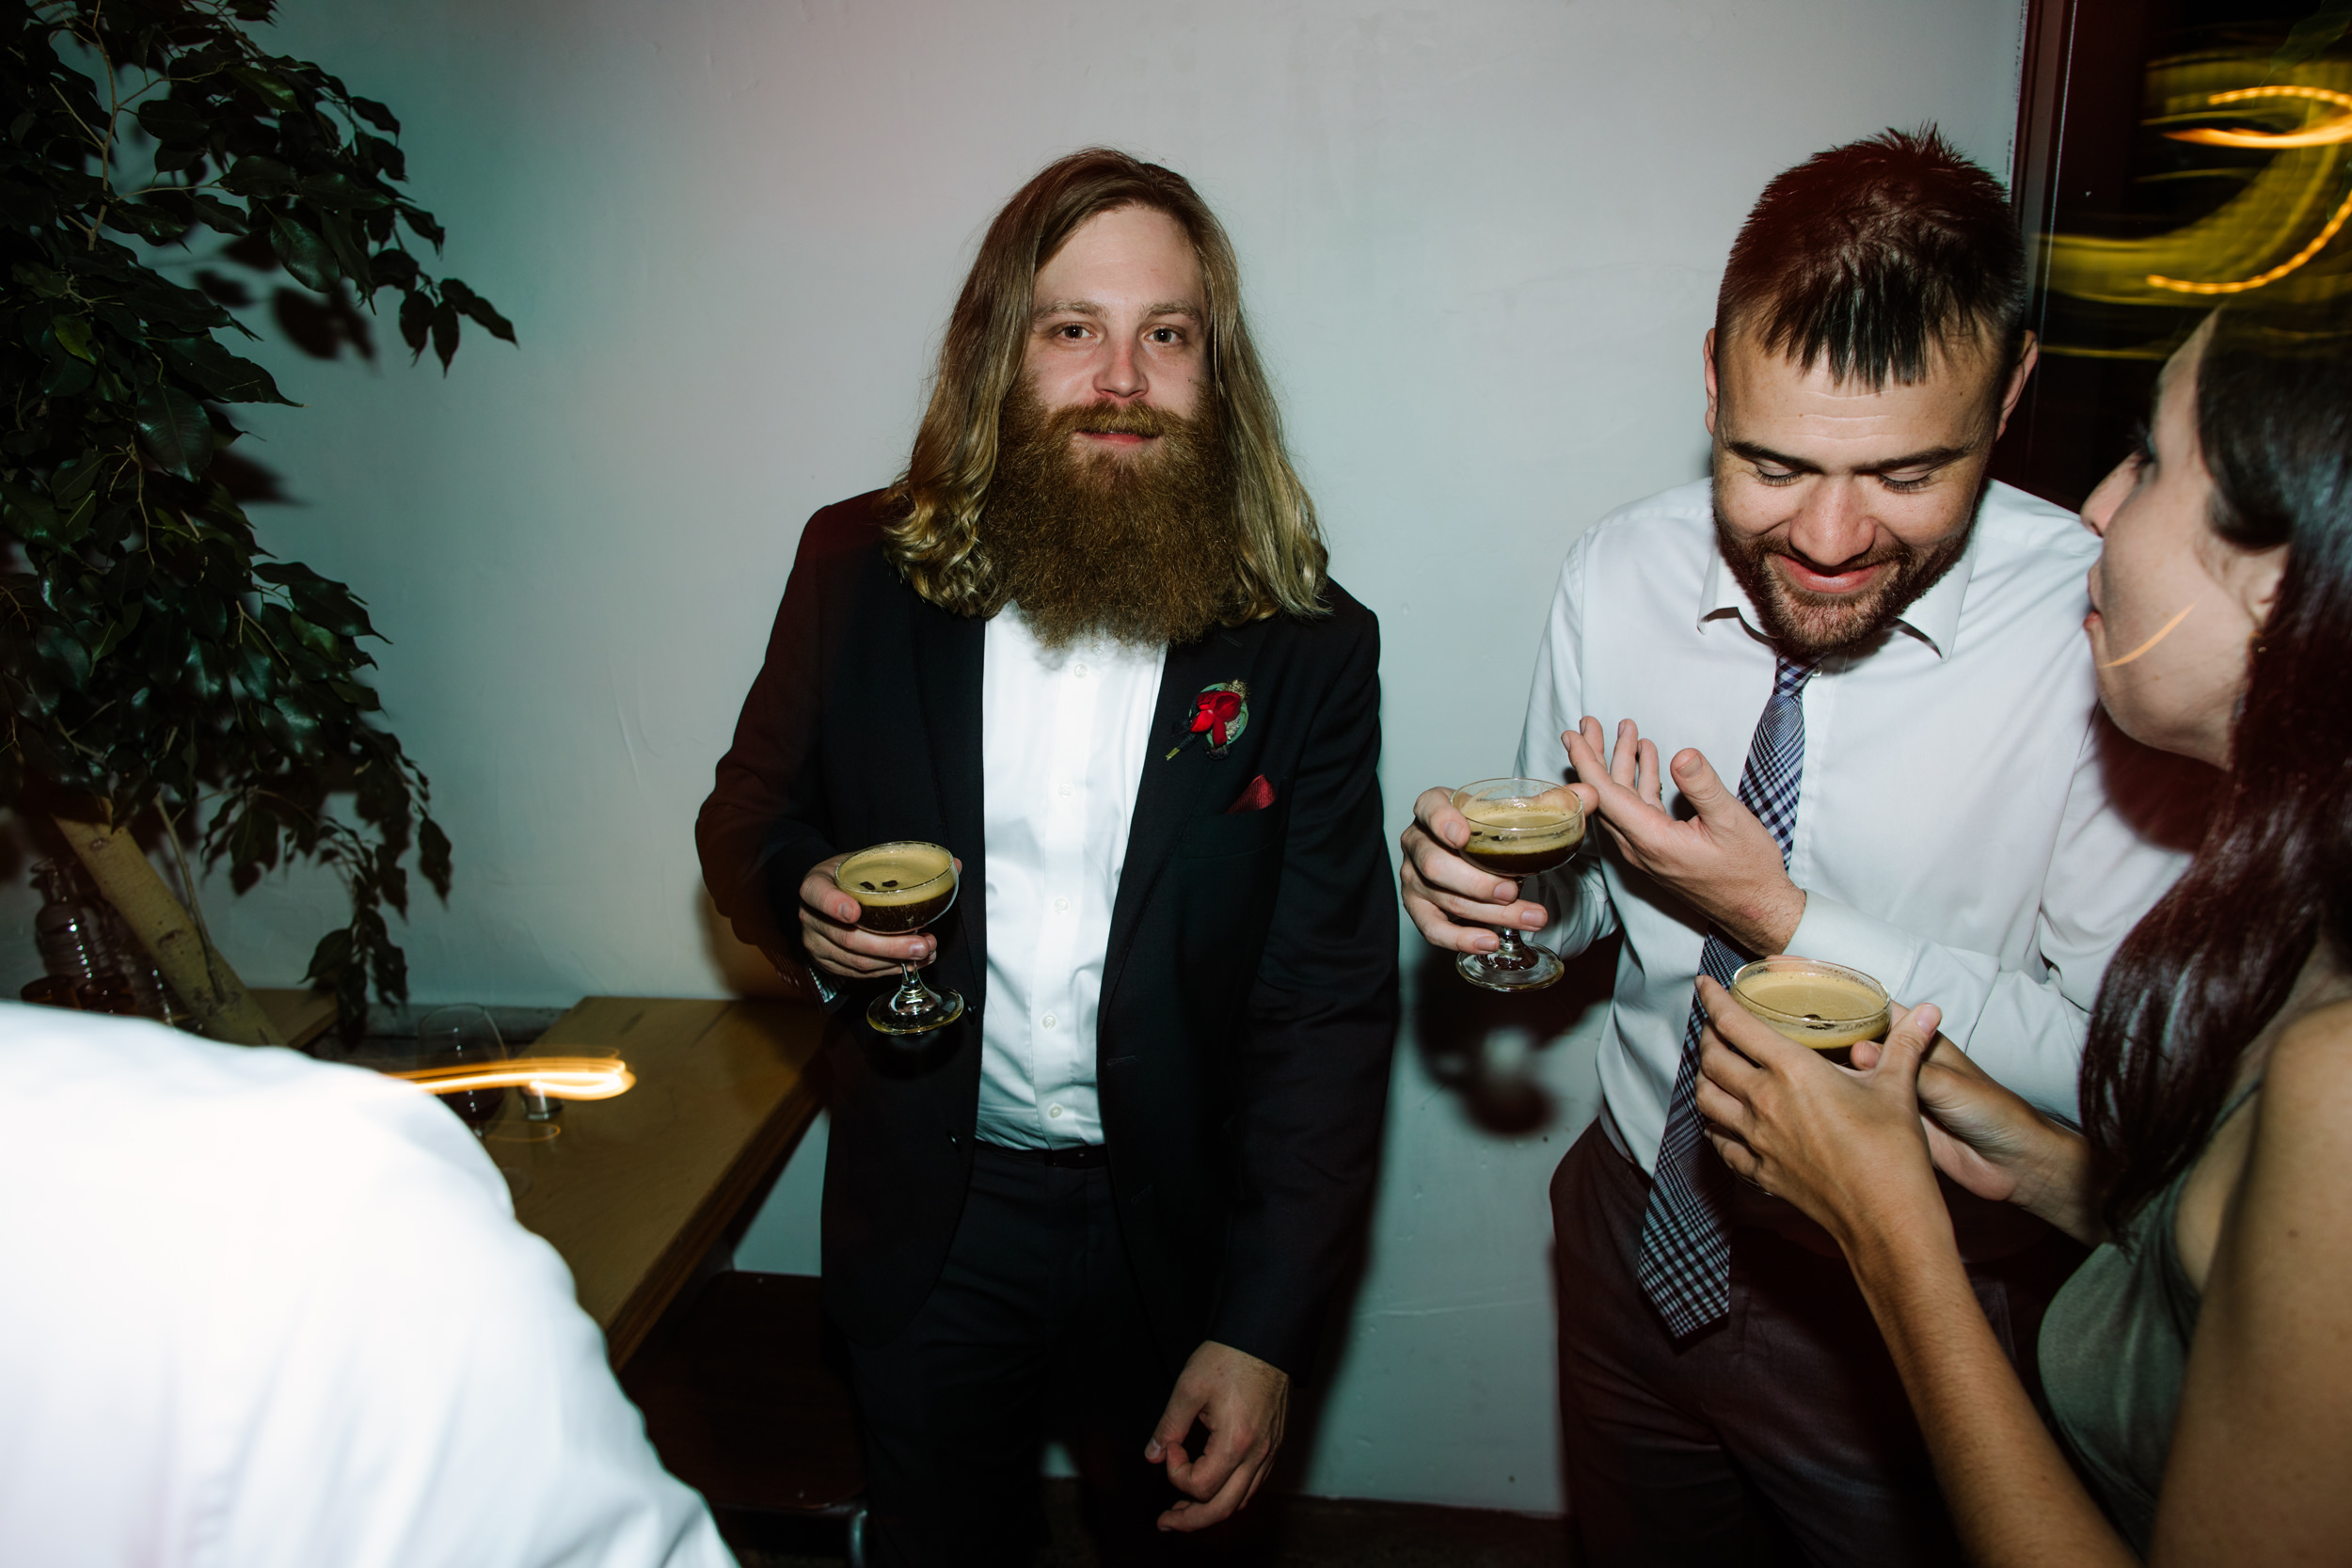 I_Got_You_Babe_Weddings_Emily_Matt_Rupert_Glasshaus_Melbourne0231.JPG